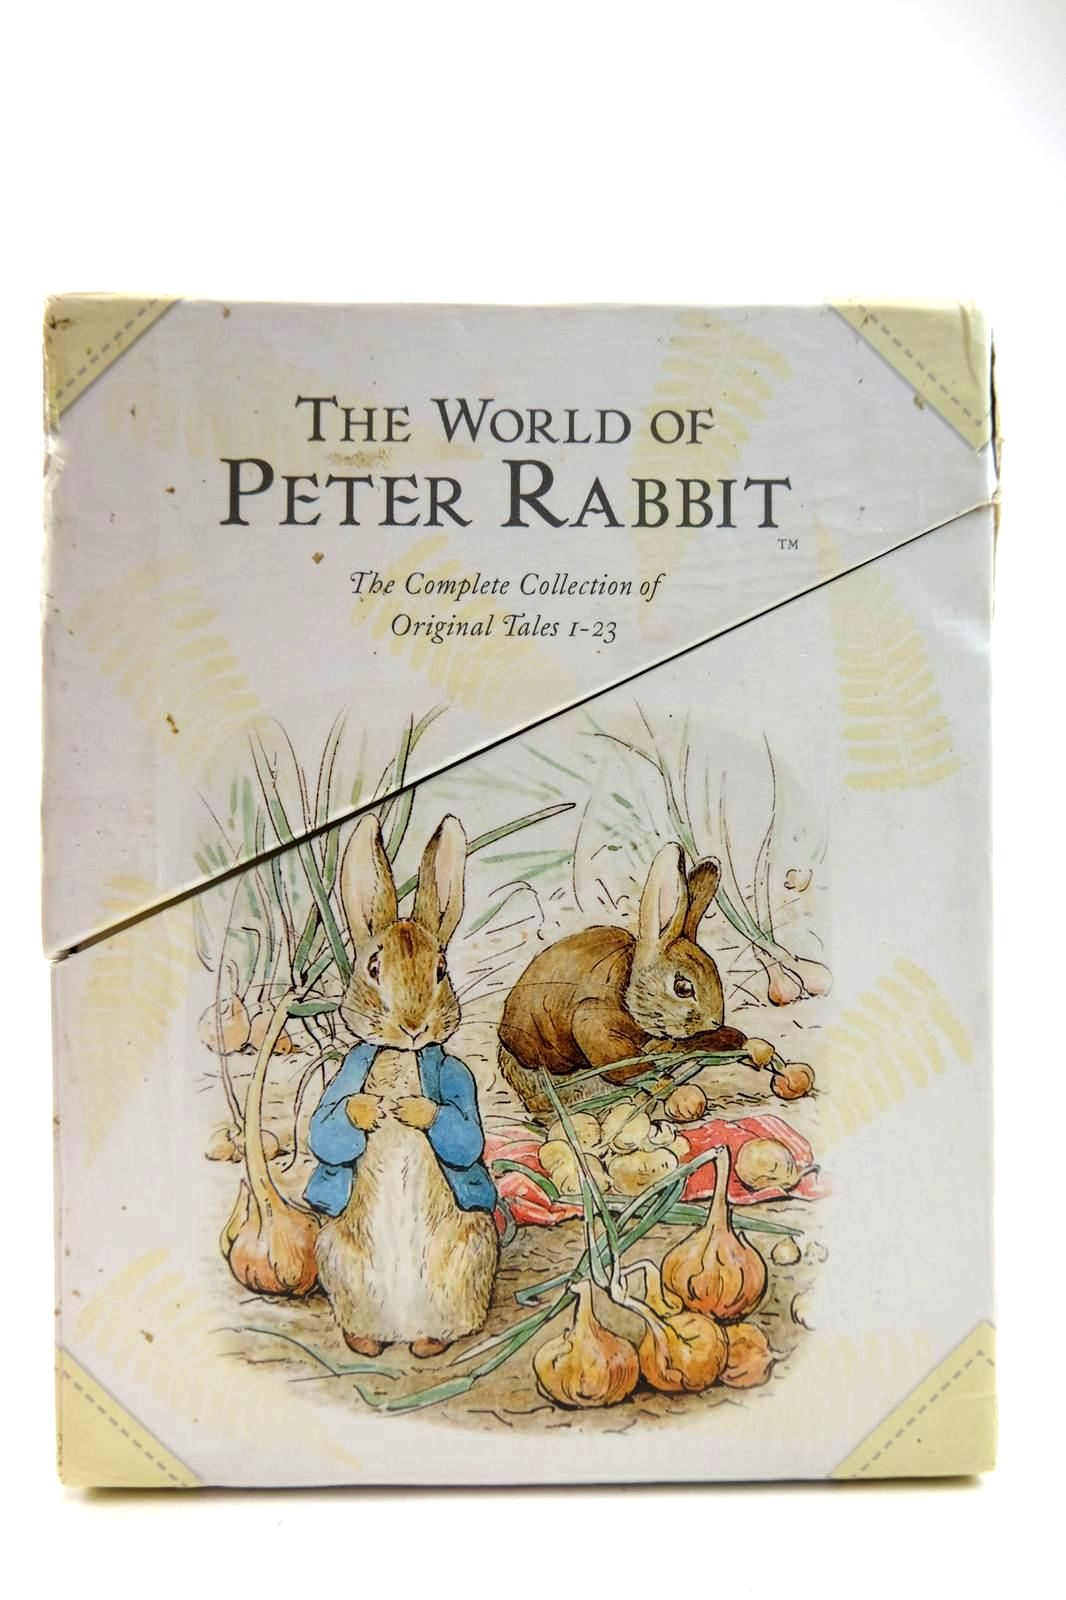 Photo of THE WORLD OF PETER RABBIT written by Potter, Beatrix illustrated by Potter, Beatrix published by Frederick Warne, Ted Smart (STOCK CODE: 2132551)  for sale by Stella & Rose's Books